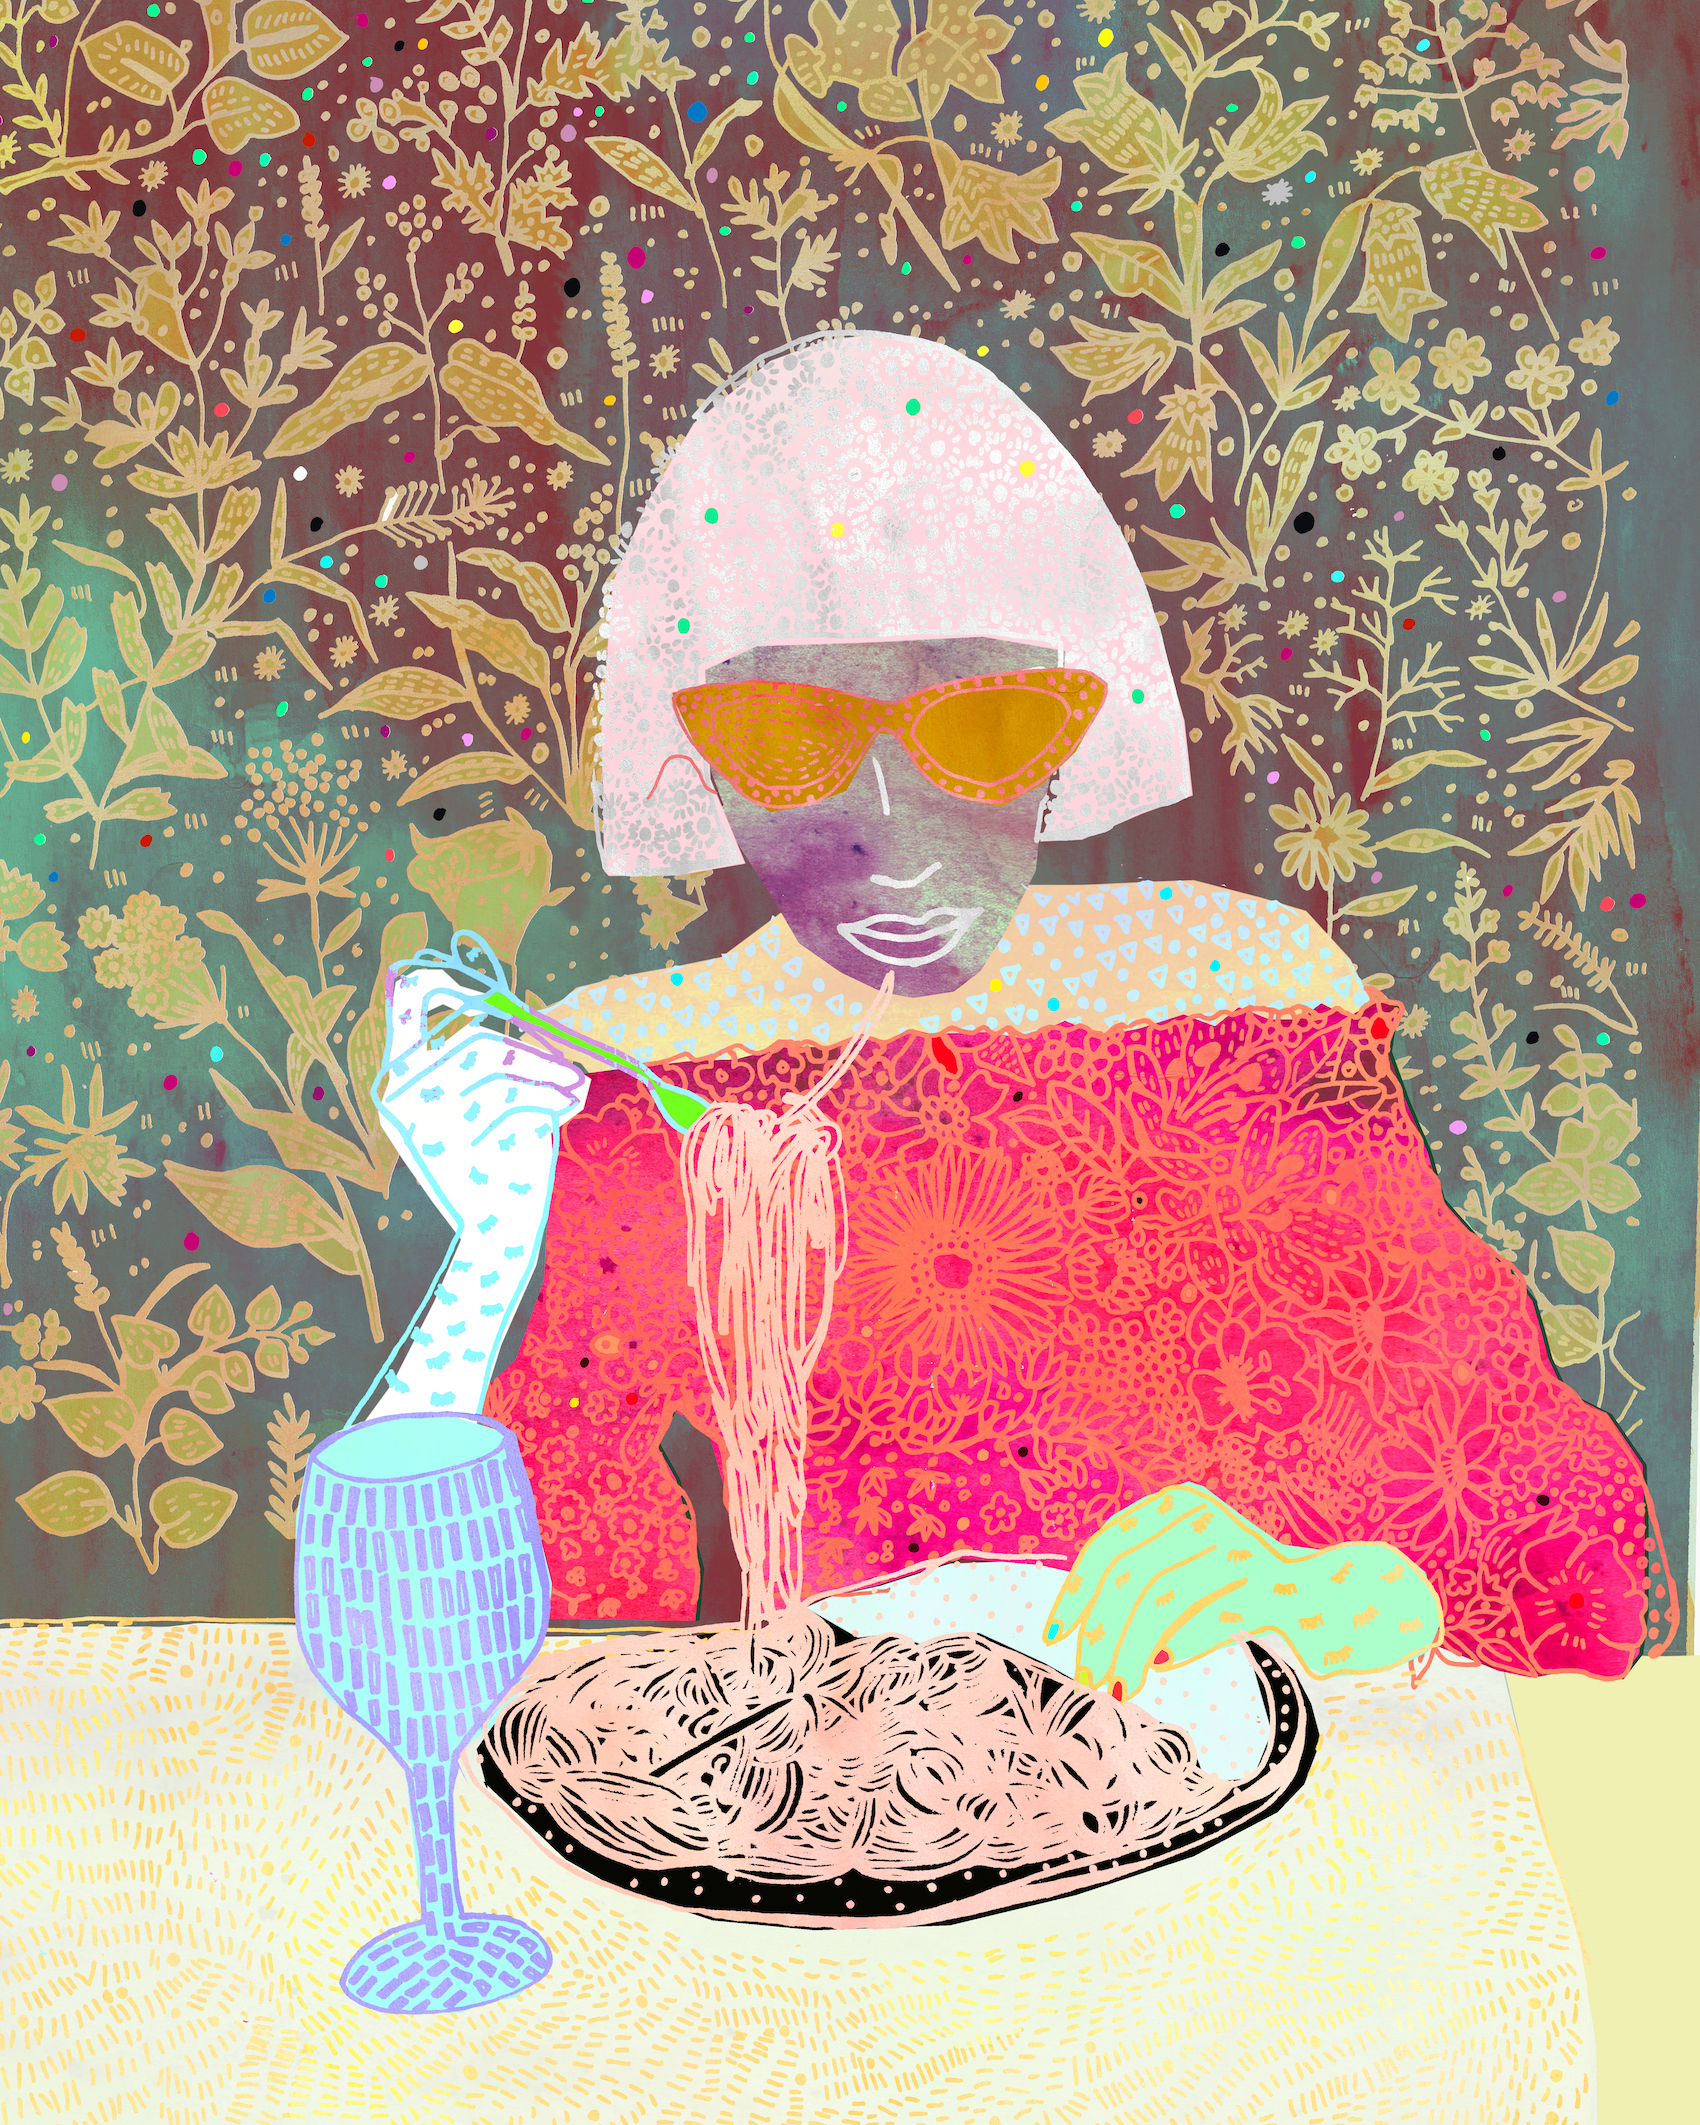 Emma Repp-_Just a Snack_-18x24-Mixed-1_5-$470.jpg